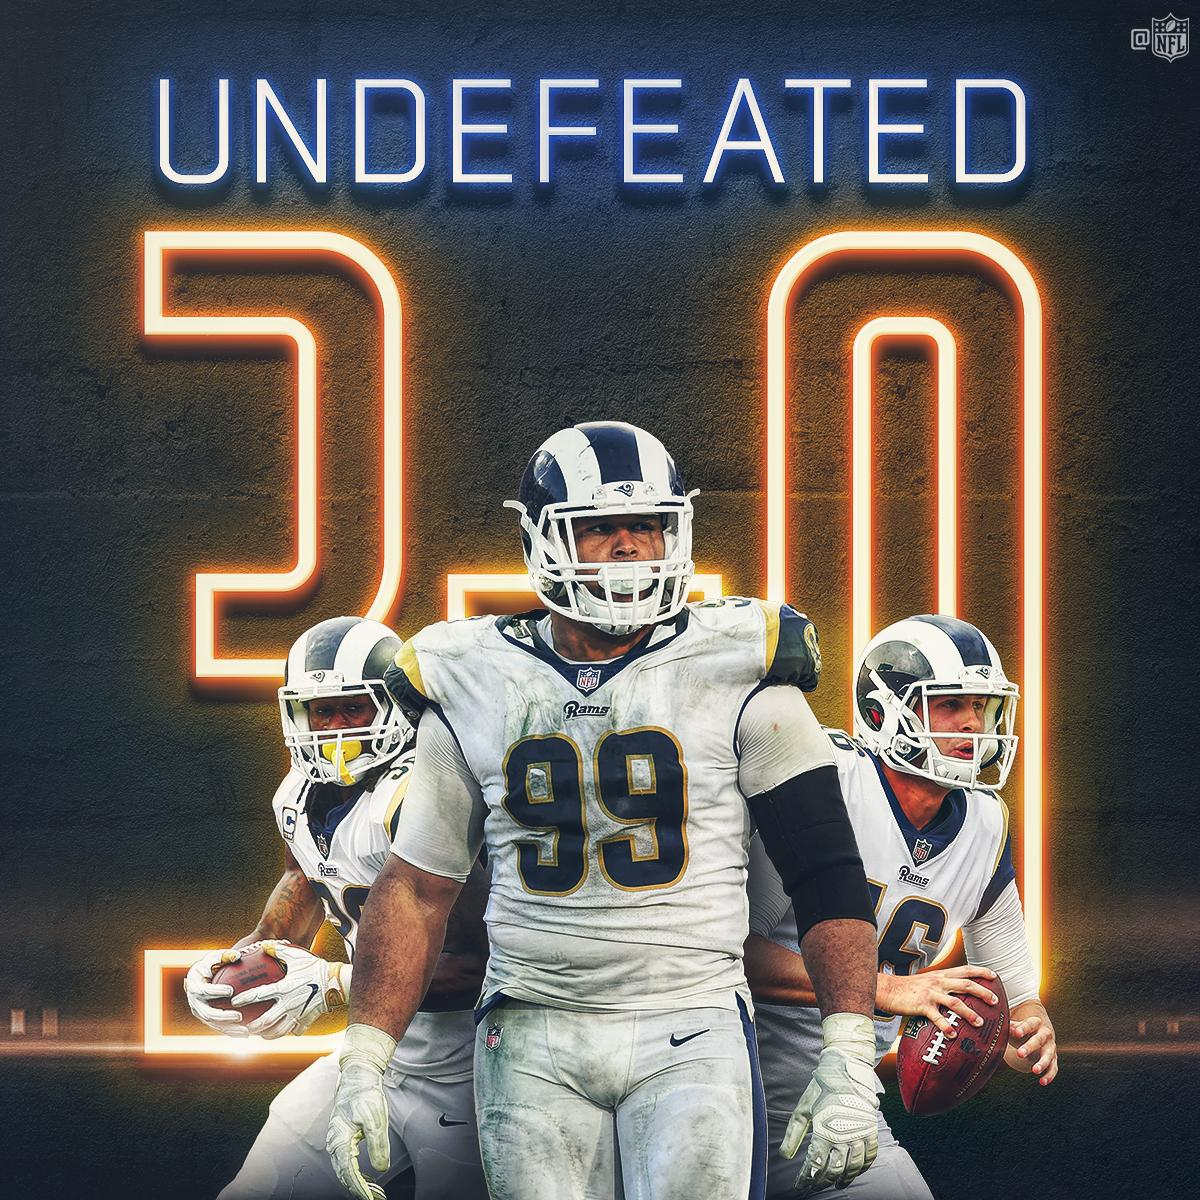 The @RamsNFL are still UNDEFEATED! #LARams https://t.co/RnQbZotA4Q